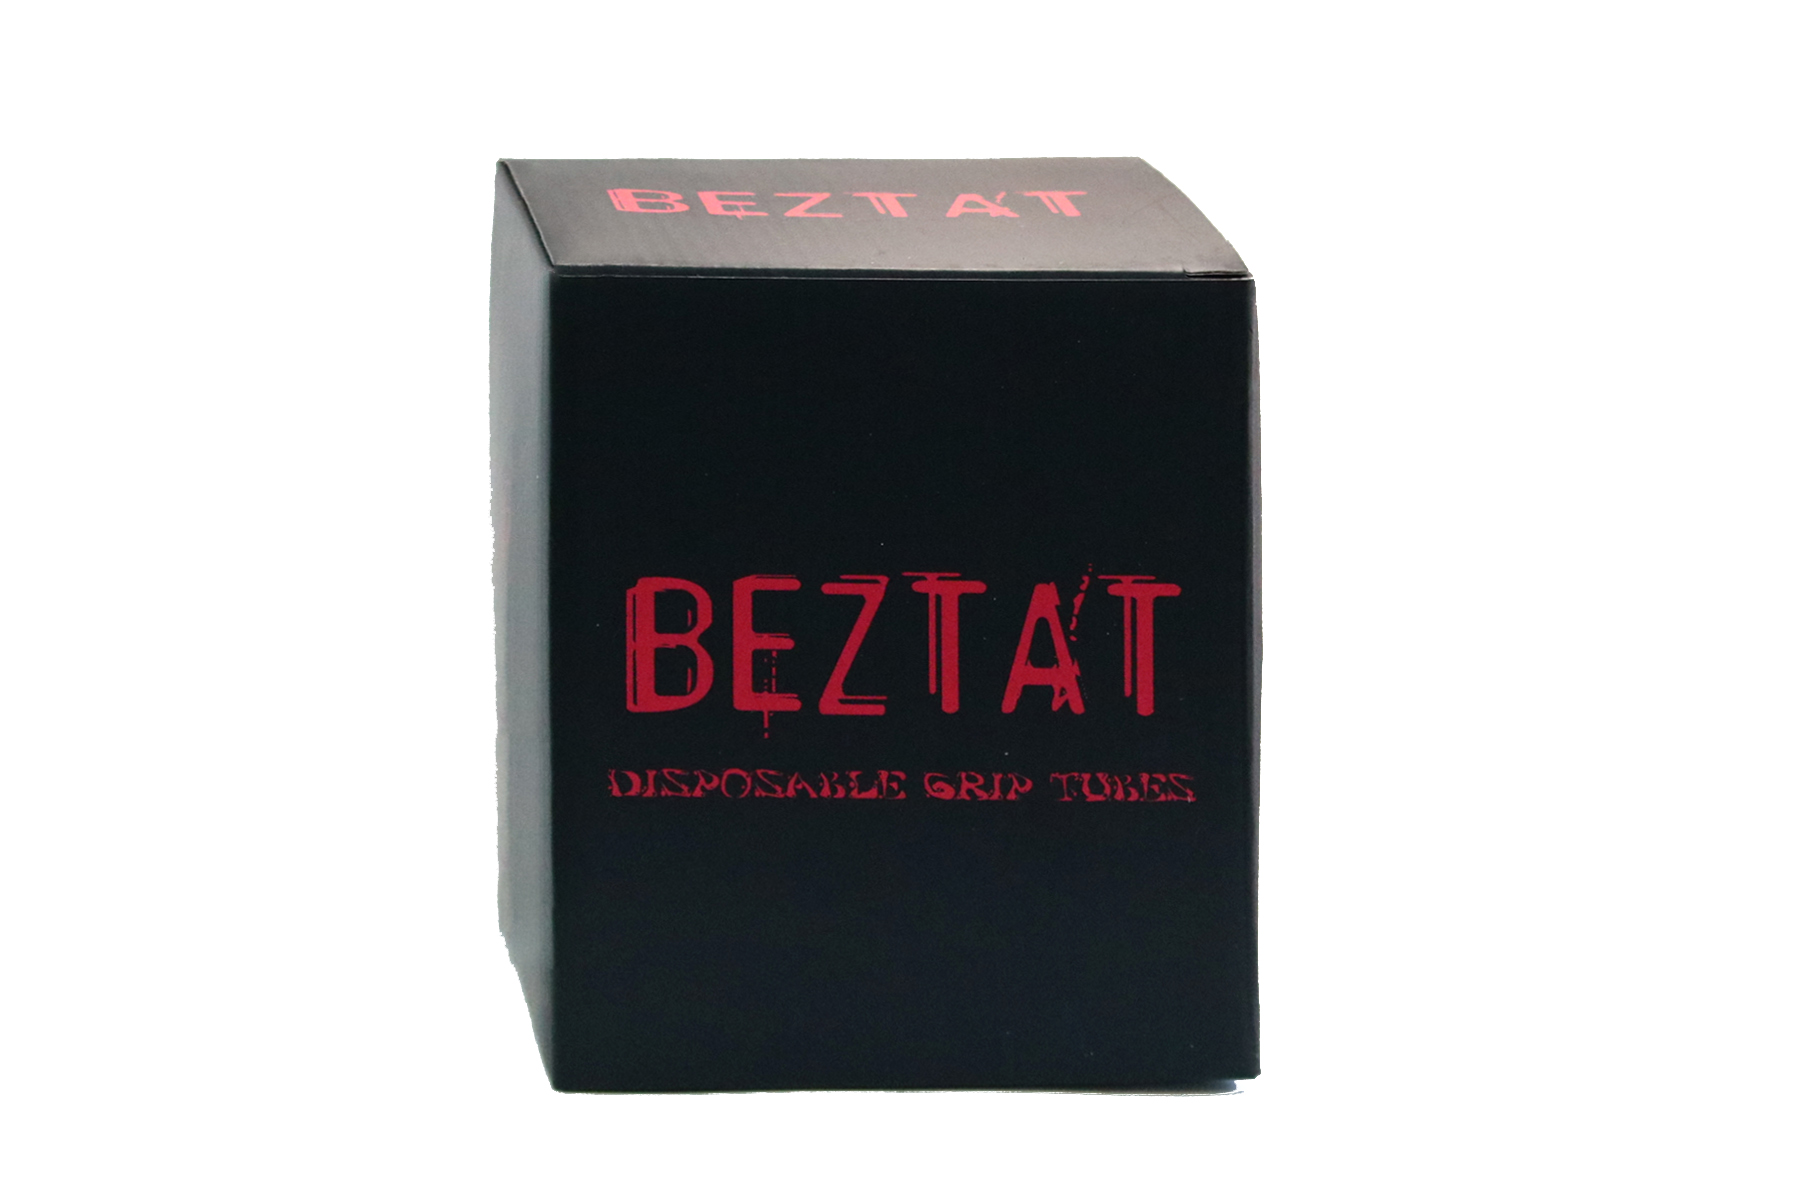 BEZTAT DISPOSABLE GRIP TUBES  -